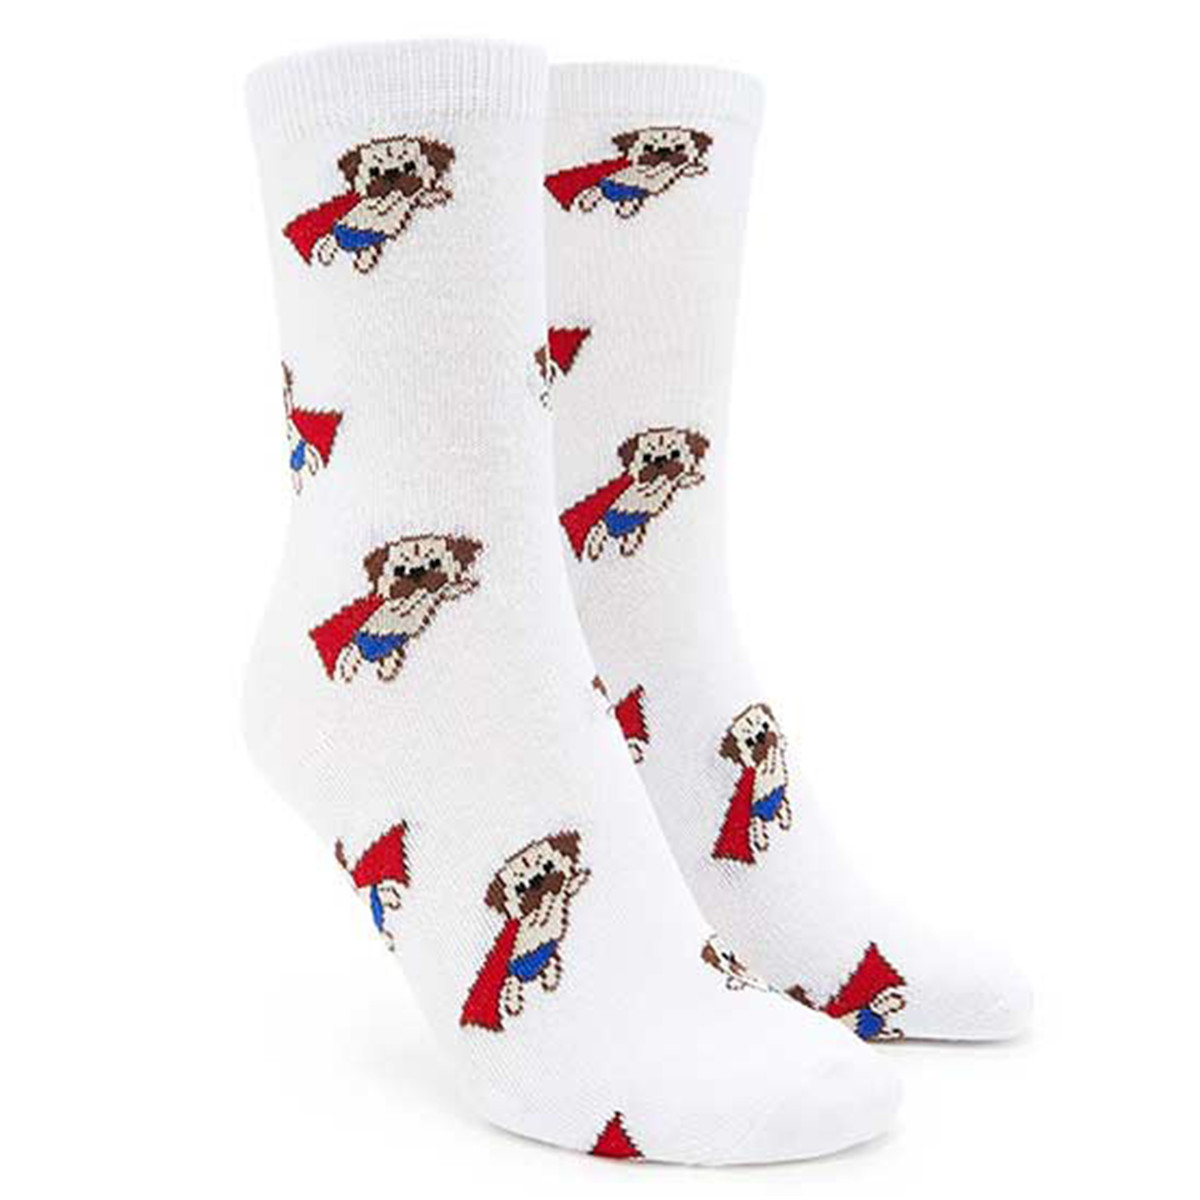 Forever 21 socks with pugs on them photo